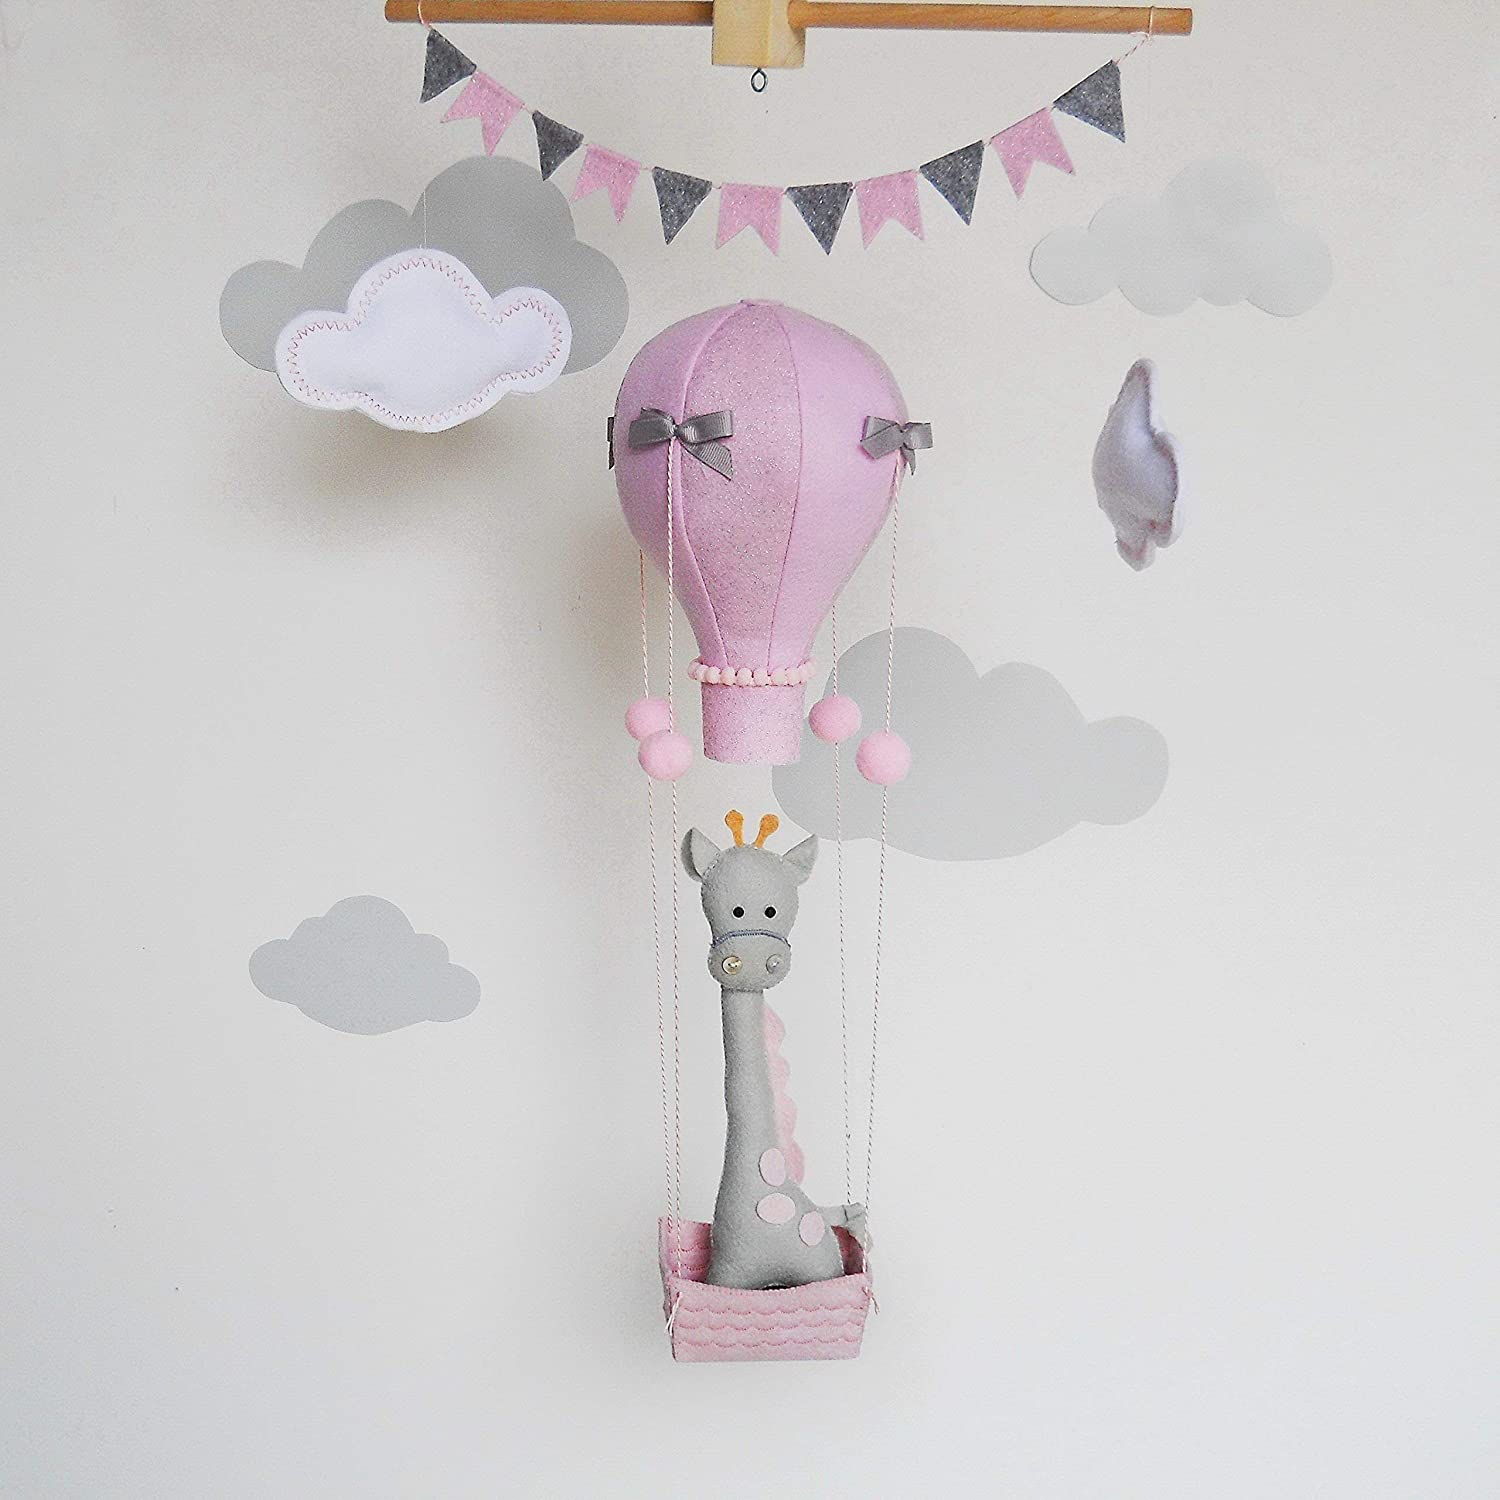 Baby Girl Nursery Decor Amazon.com: Baby mobile girl giraffe in hot air balloon-Nursery decor  giraffe-Felt baby girl mobile-Pink hot air balloon baby girl mobile-Baby  shower gift: ...